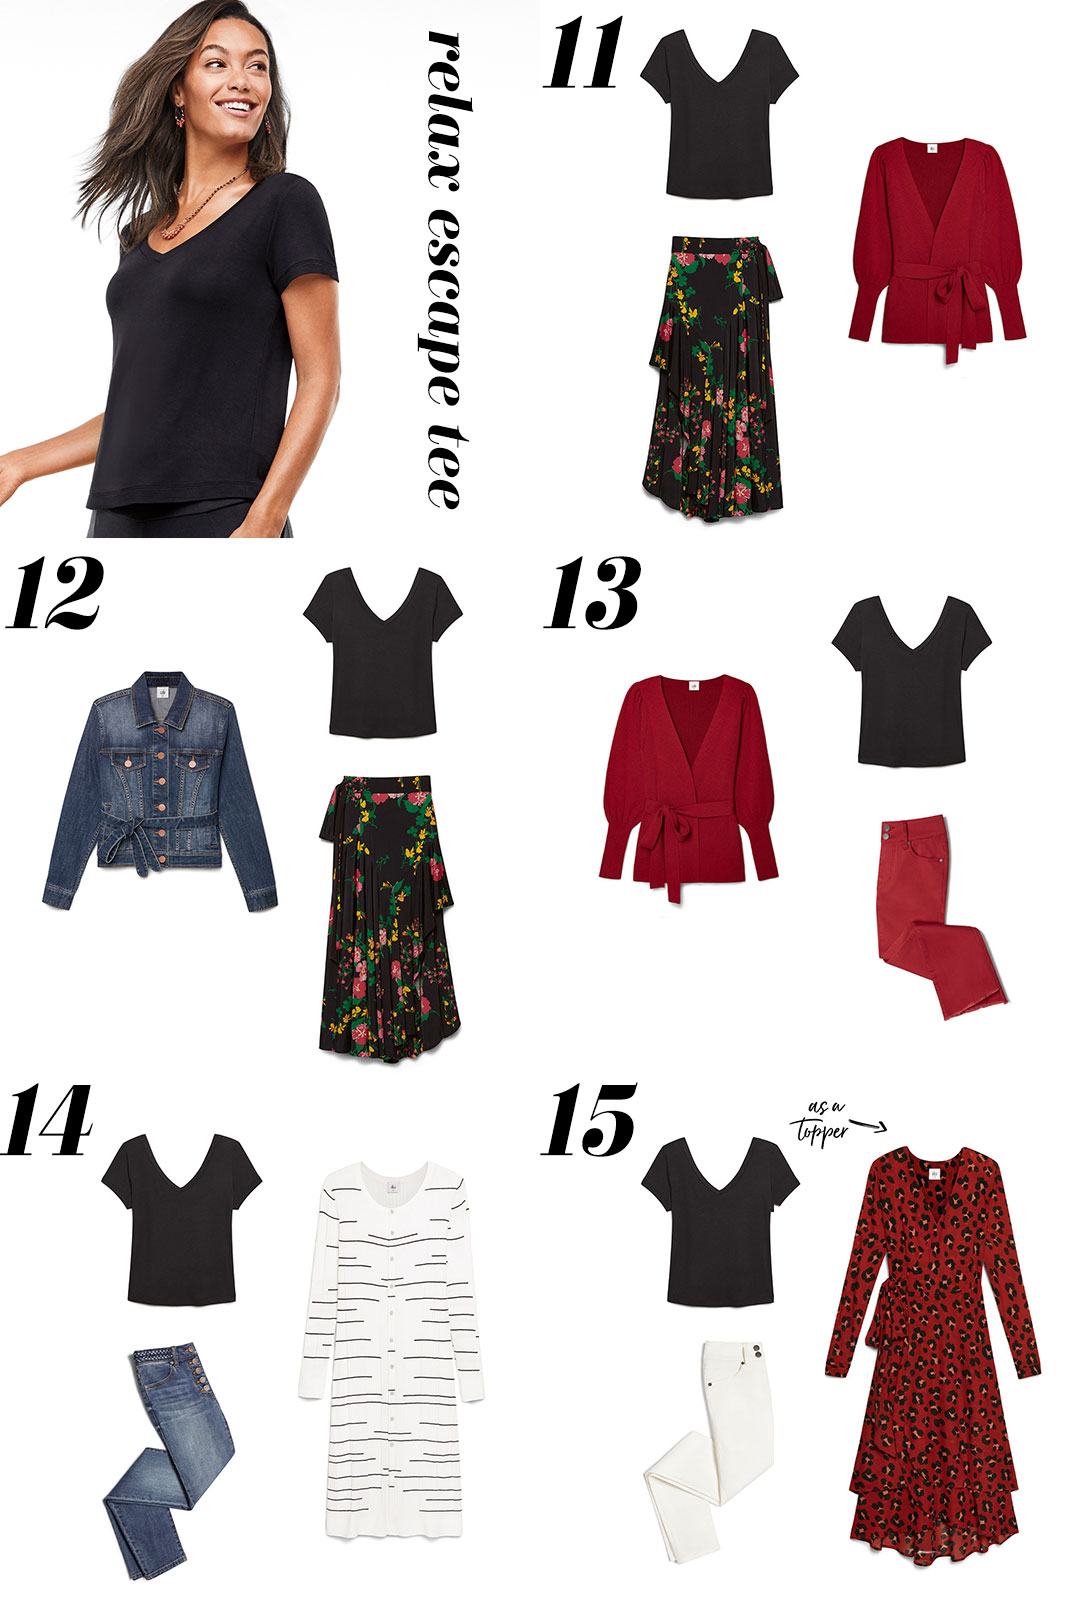 cabi Clothing | 30 Spring Outfit Ideas